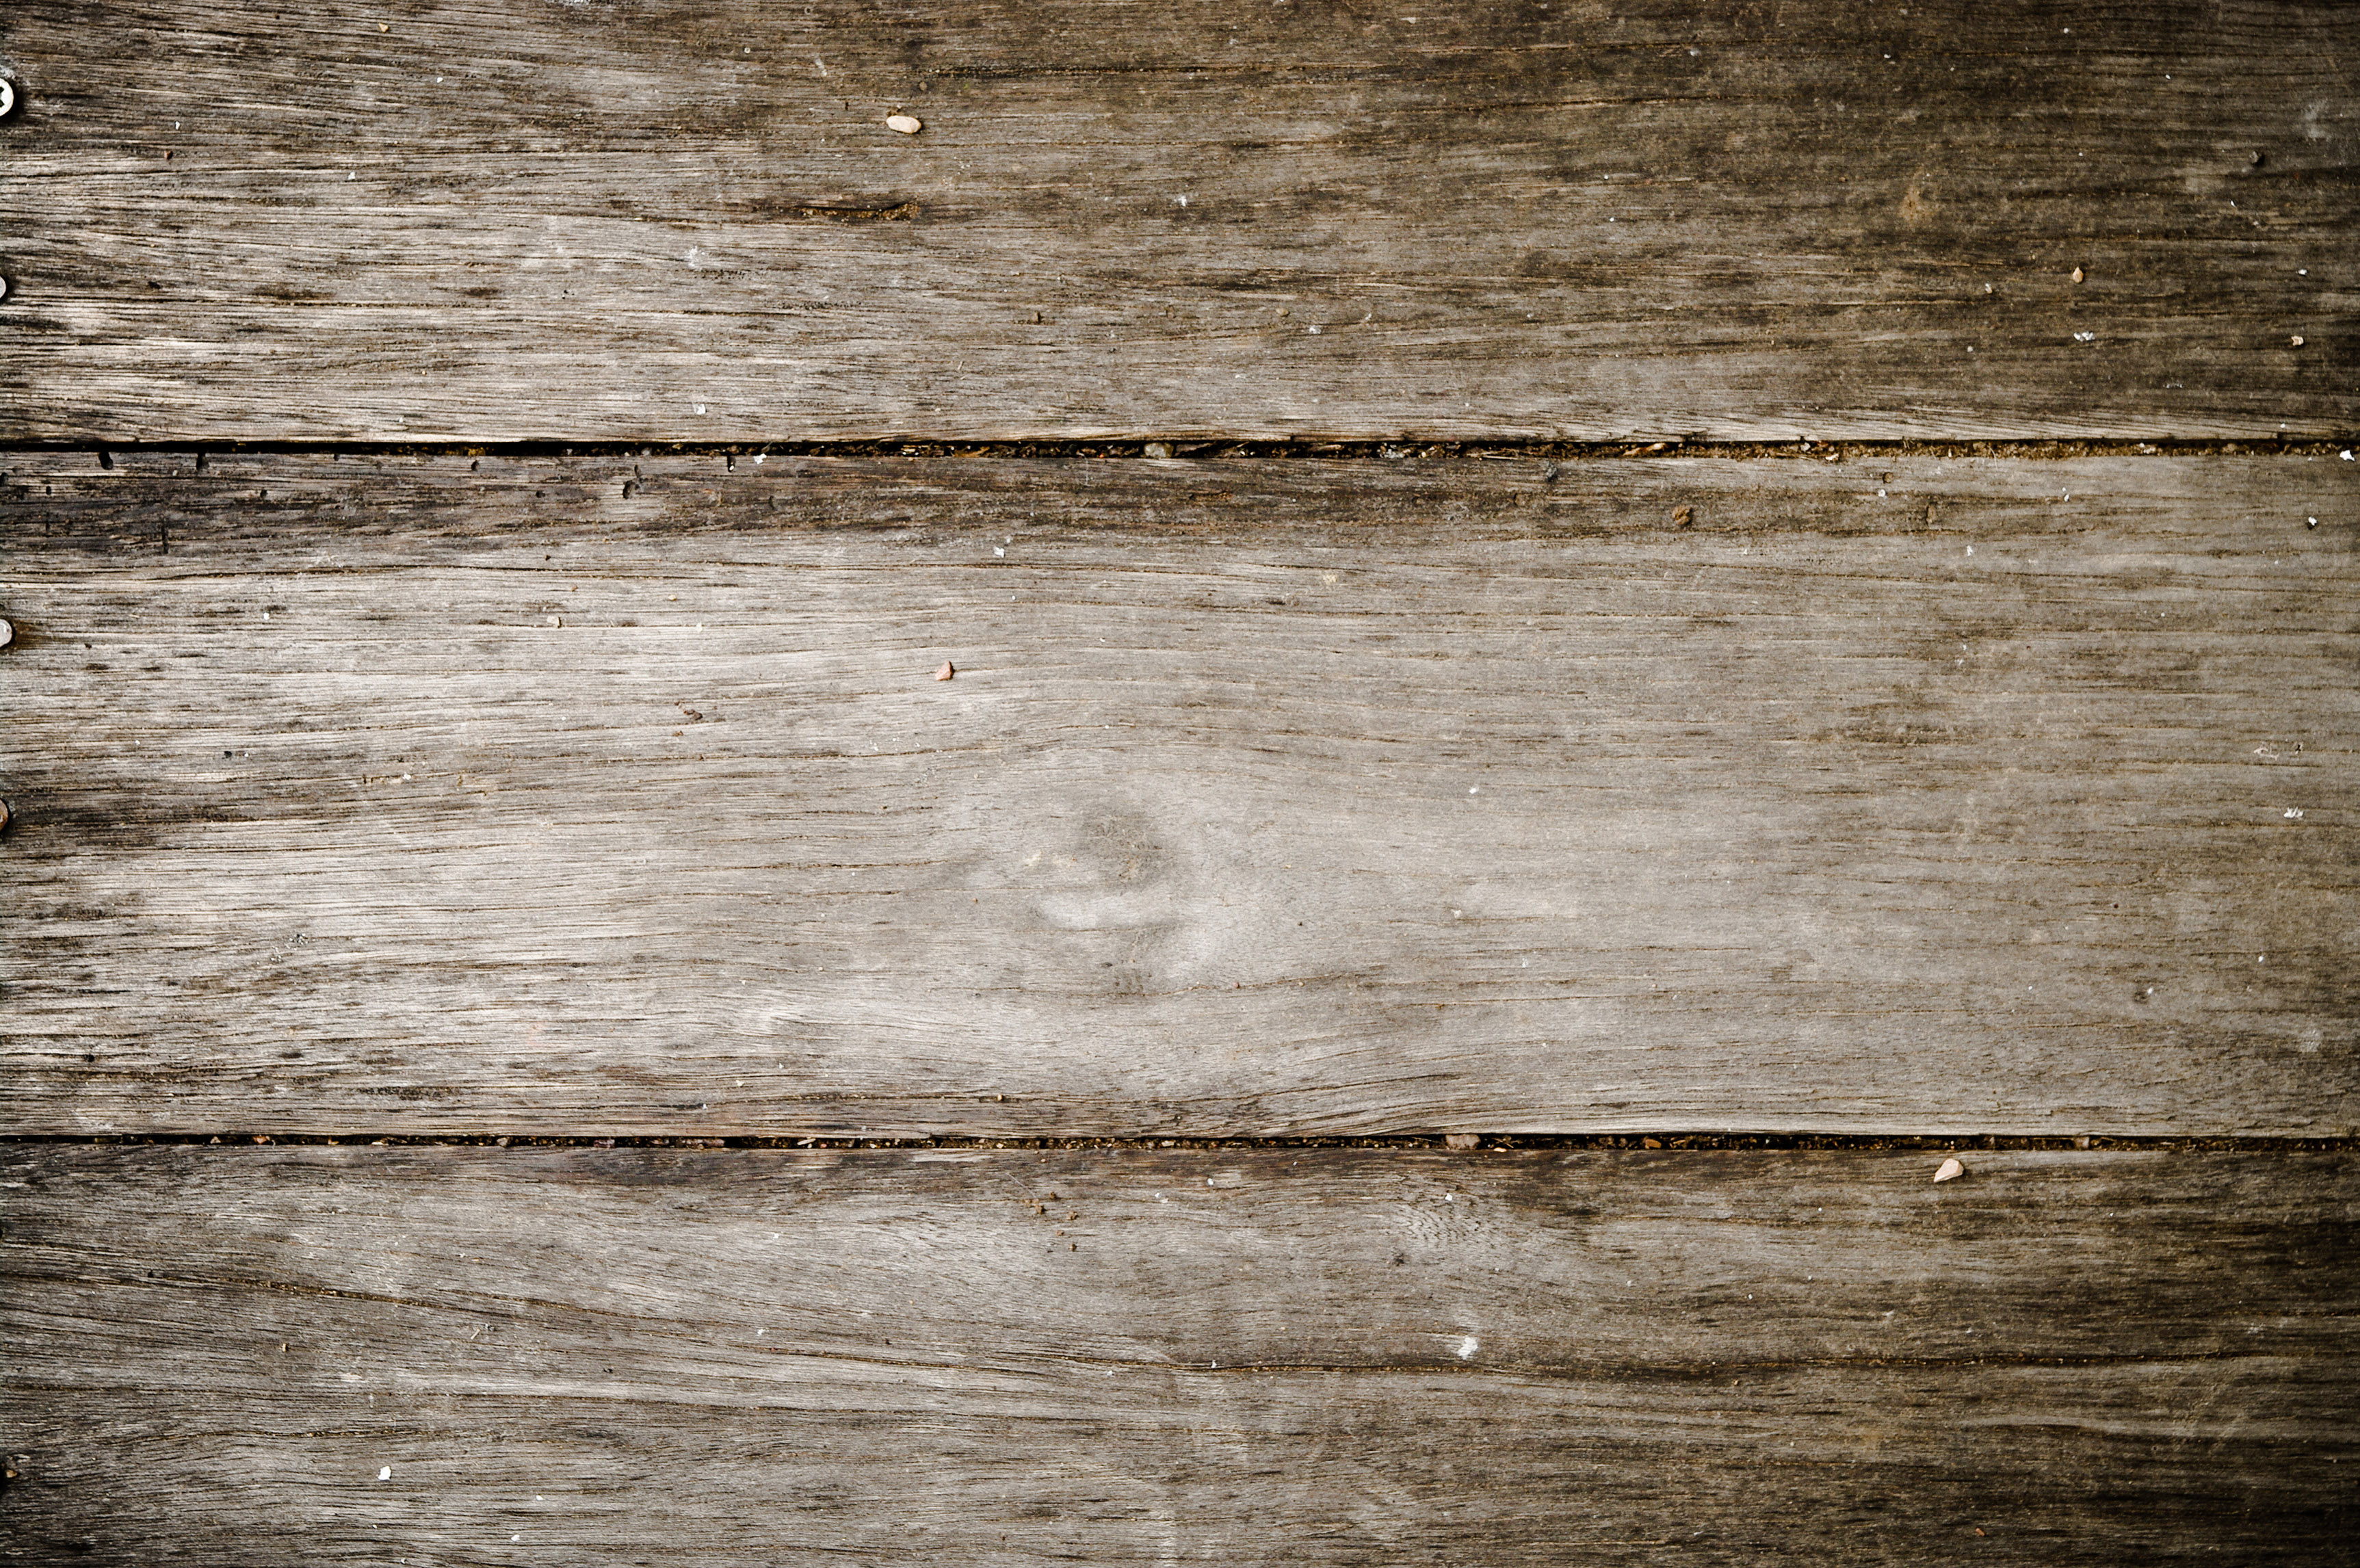 wooden background texture photo of old grungy wood 3450x2292